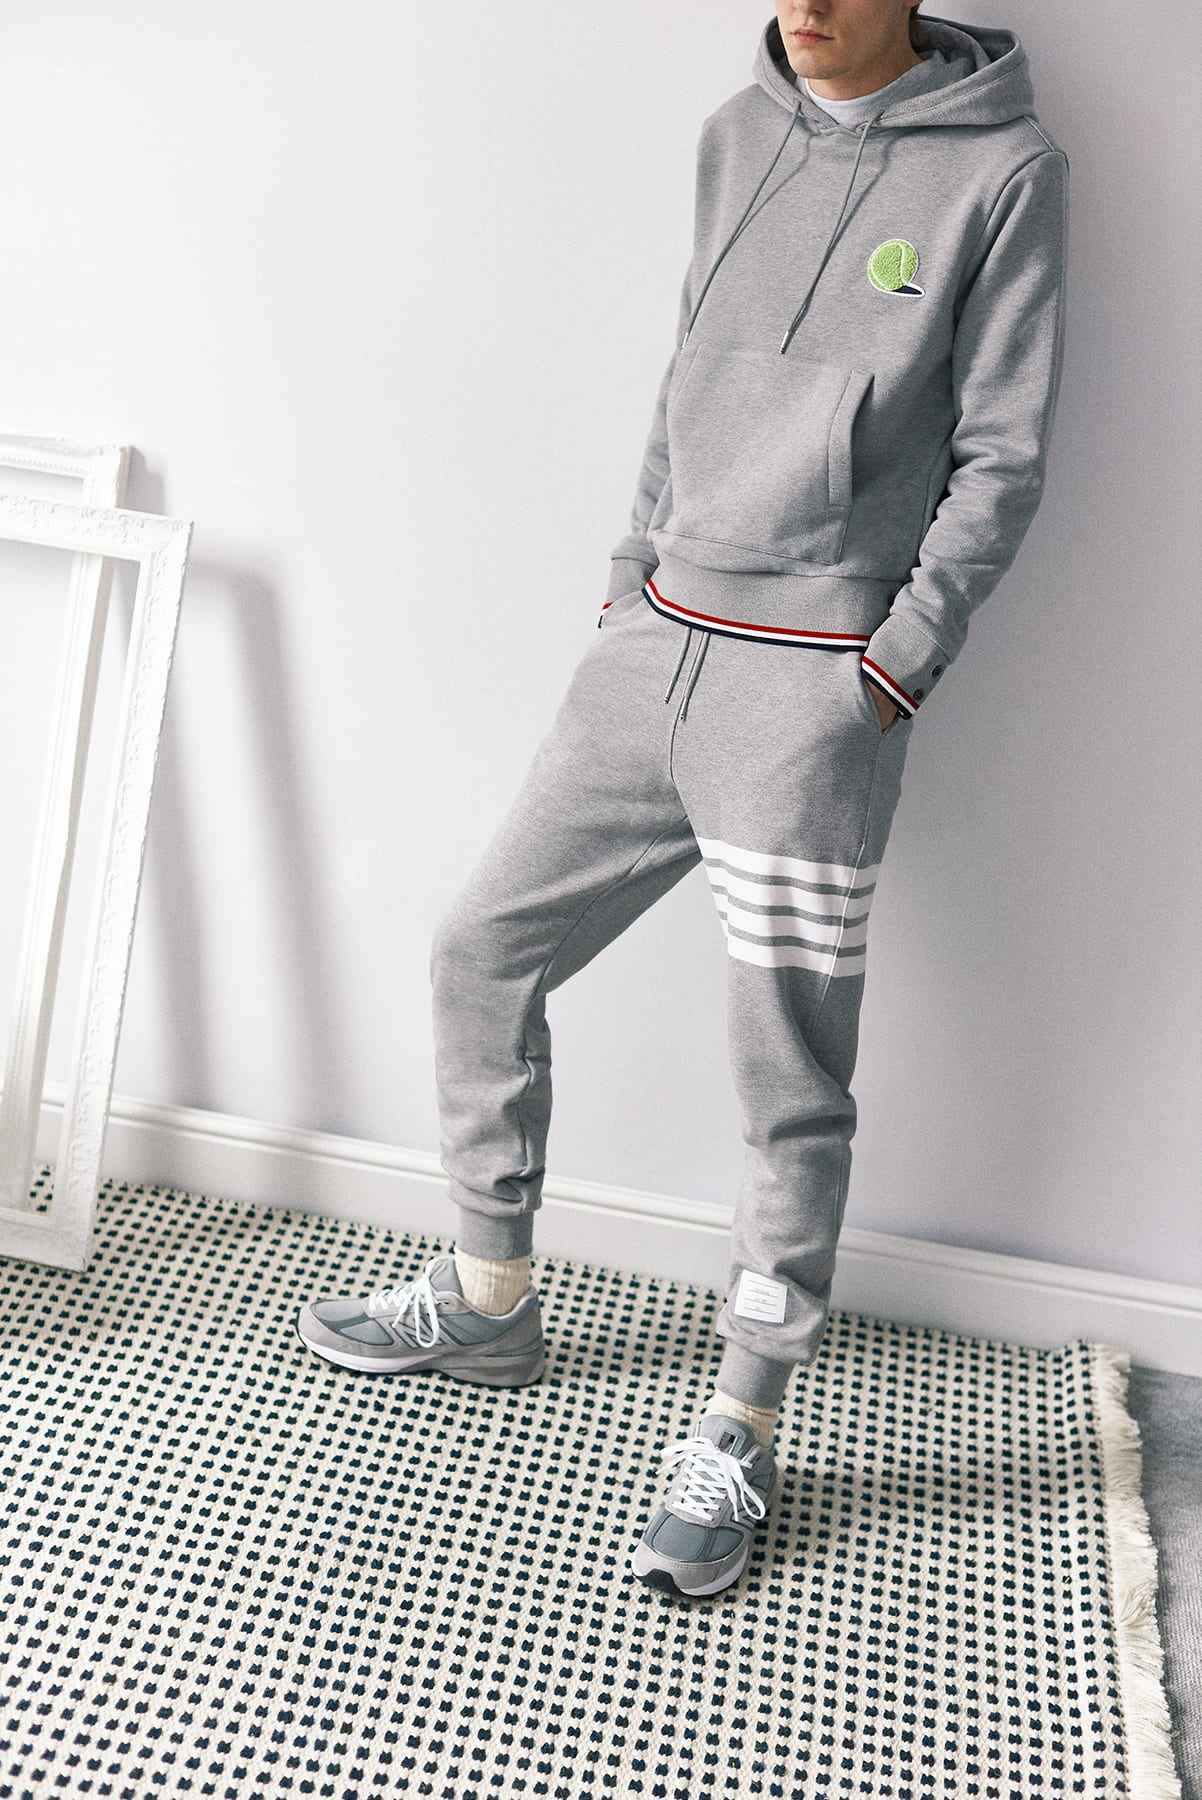 Home Body| END. SS20 Editorial .02 model wears Thom Browne and New Balance